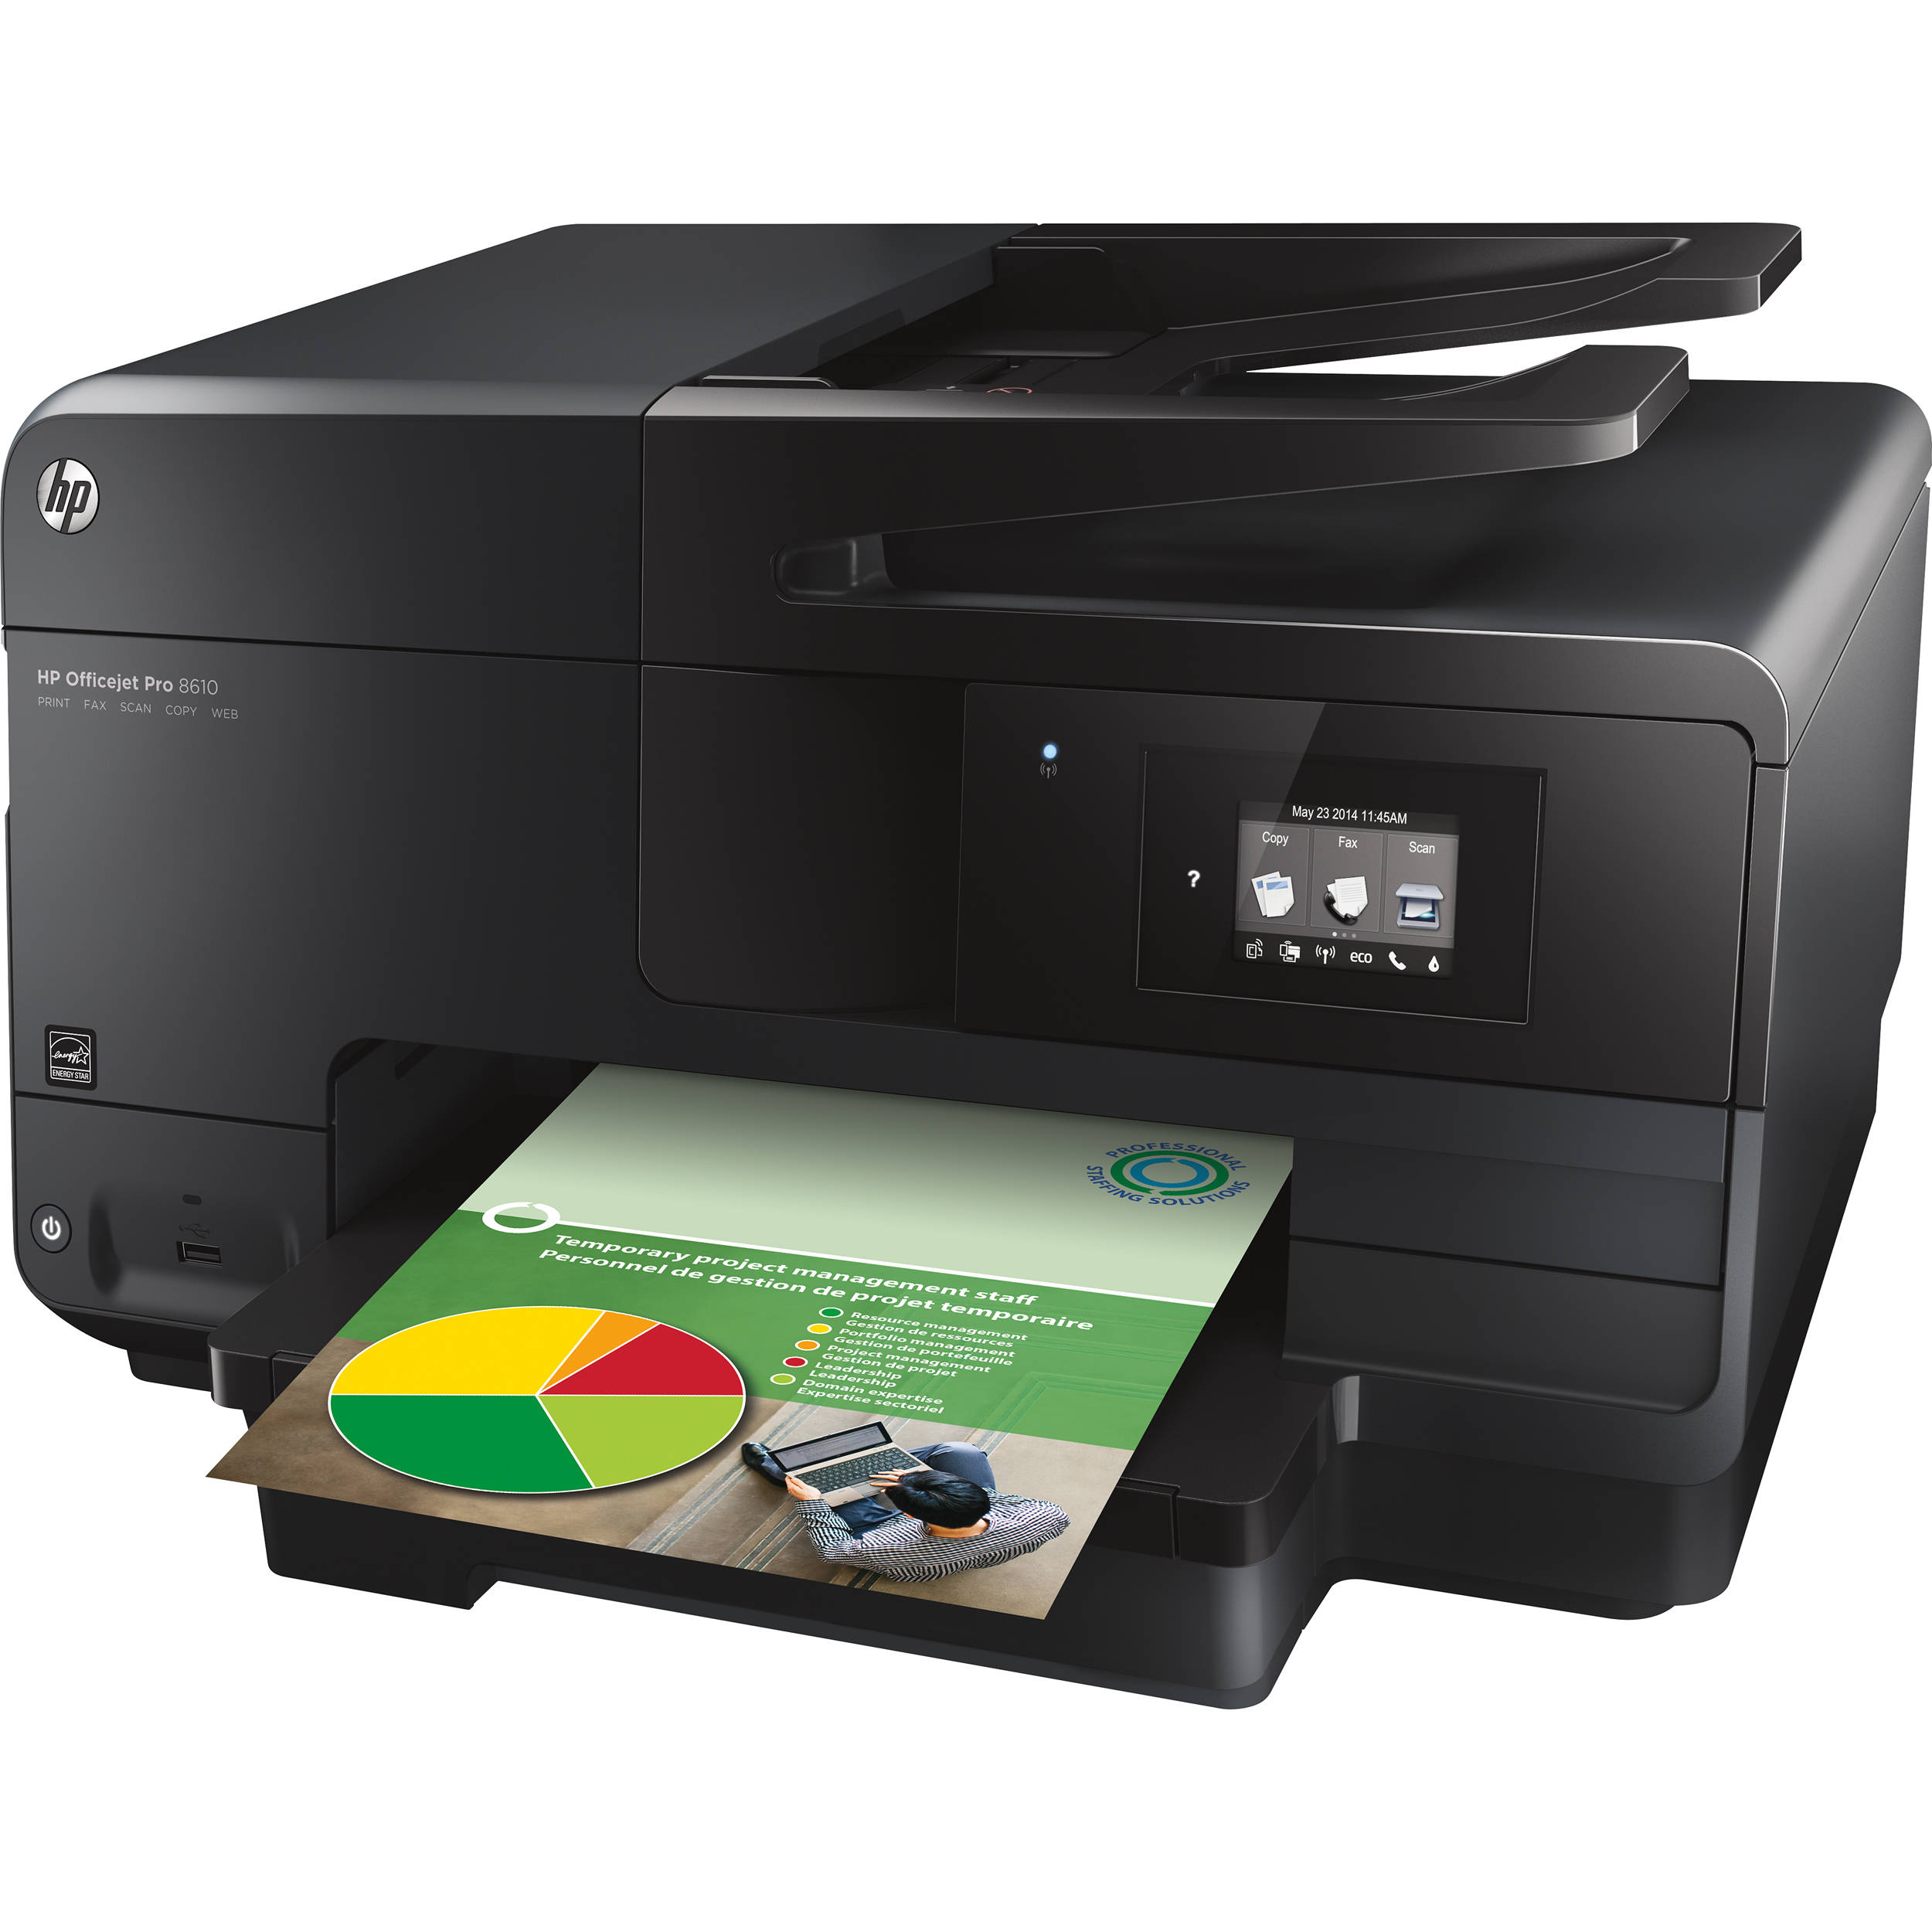 HP OFFICEJET 8610 SCANNER WINDOWS 10 DRIVER DOWNLOAD